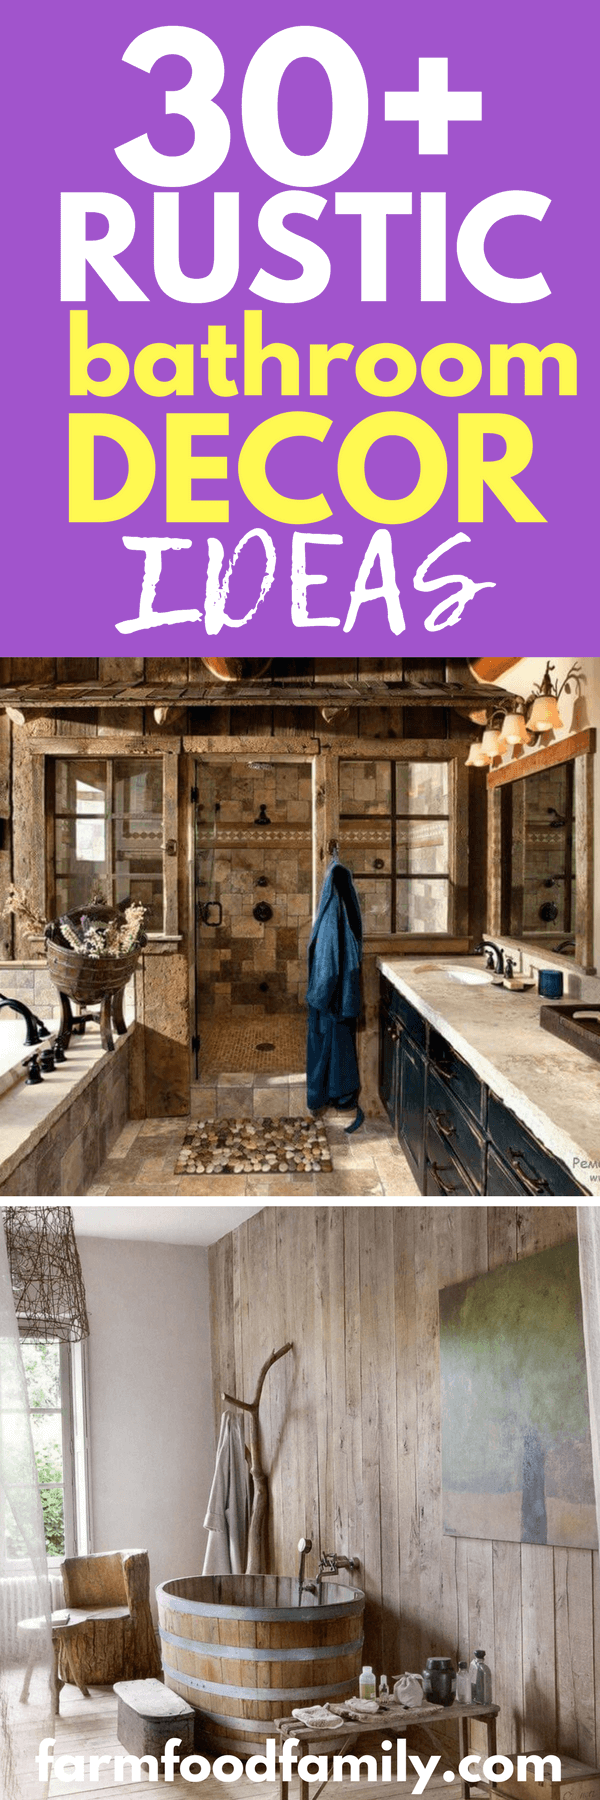 Your budget and bathroom size will also affect the type of design that you will be creating. You won't be able to use a lot of stonework in your bathroom if you have a shoestring budget to work with, so plan wisely and use accessories and accent pieces instead of tackling the entire room. For small bathrooms, a little rustic charm will go a long way.